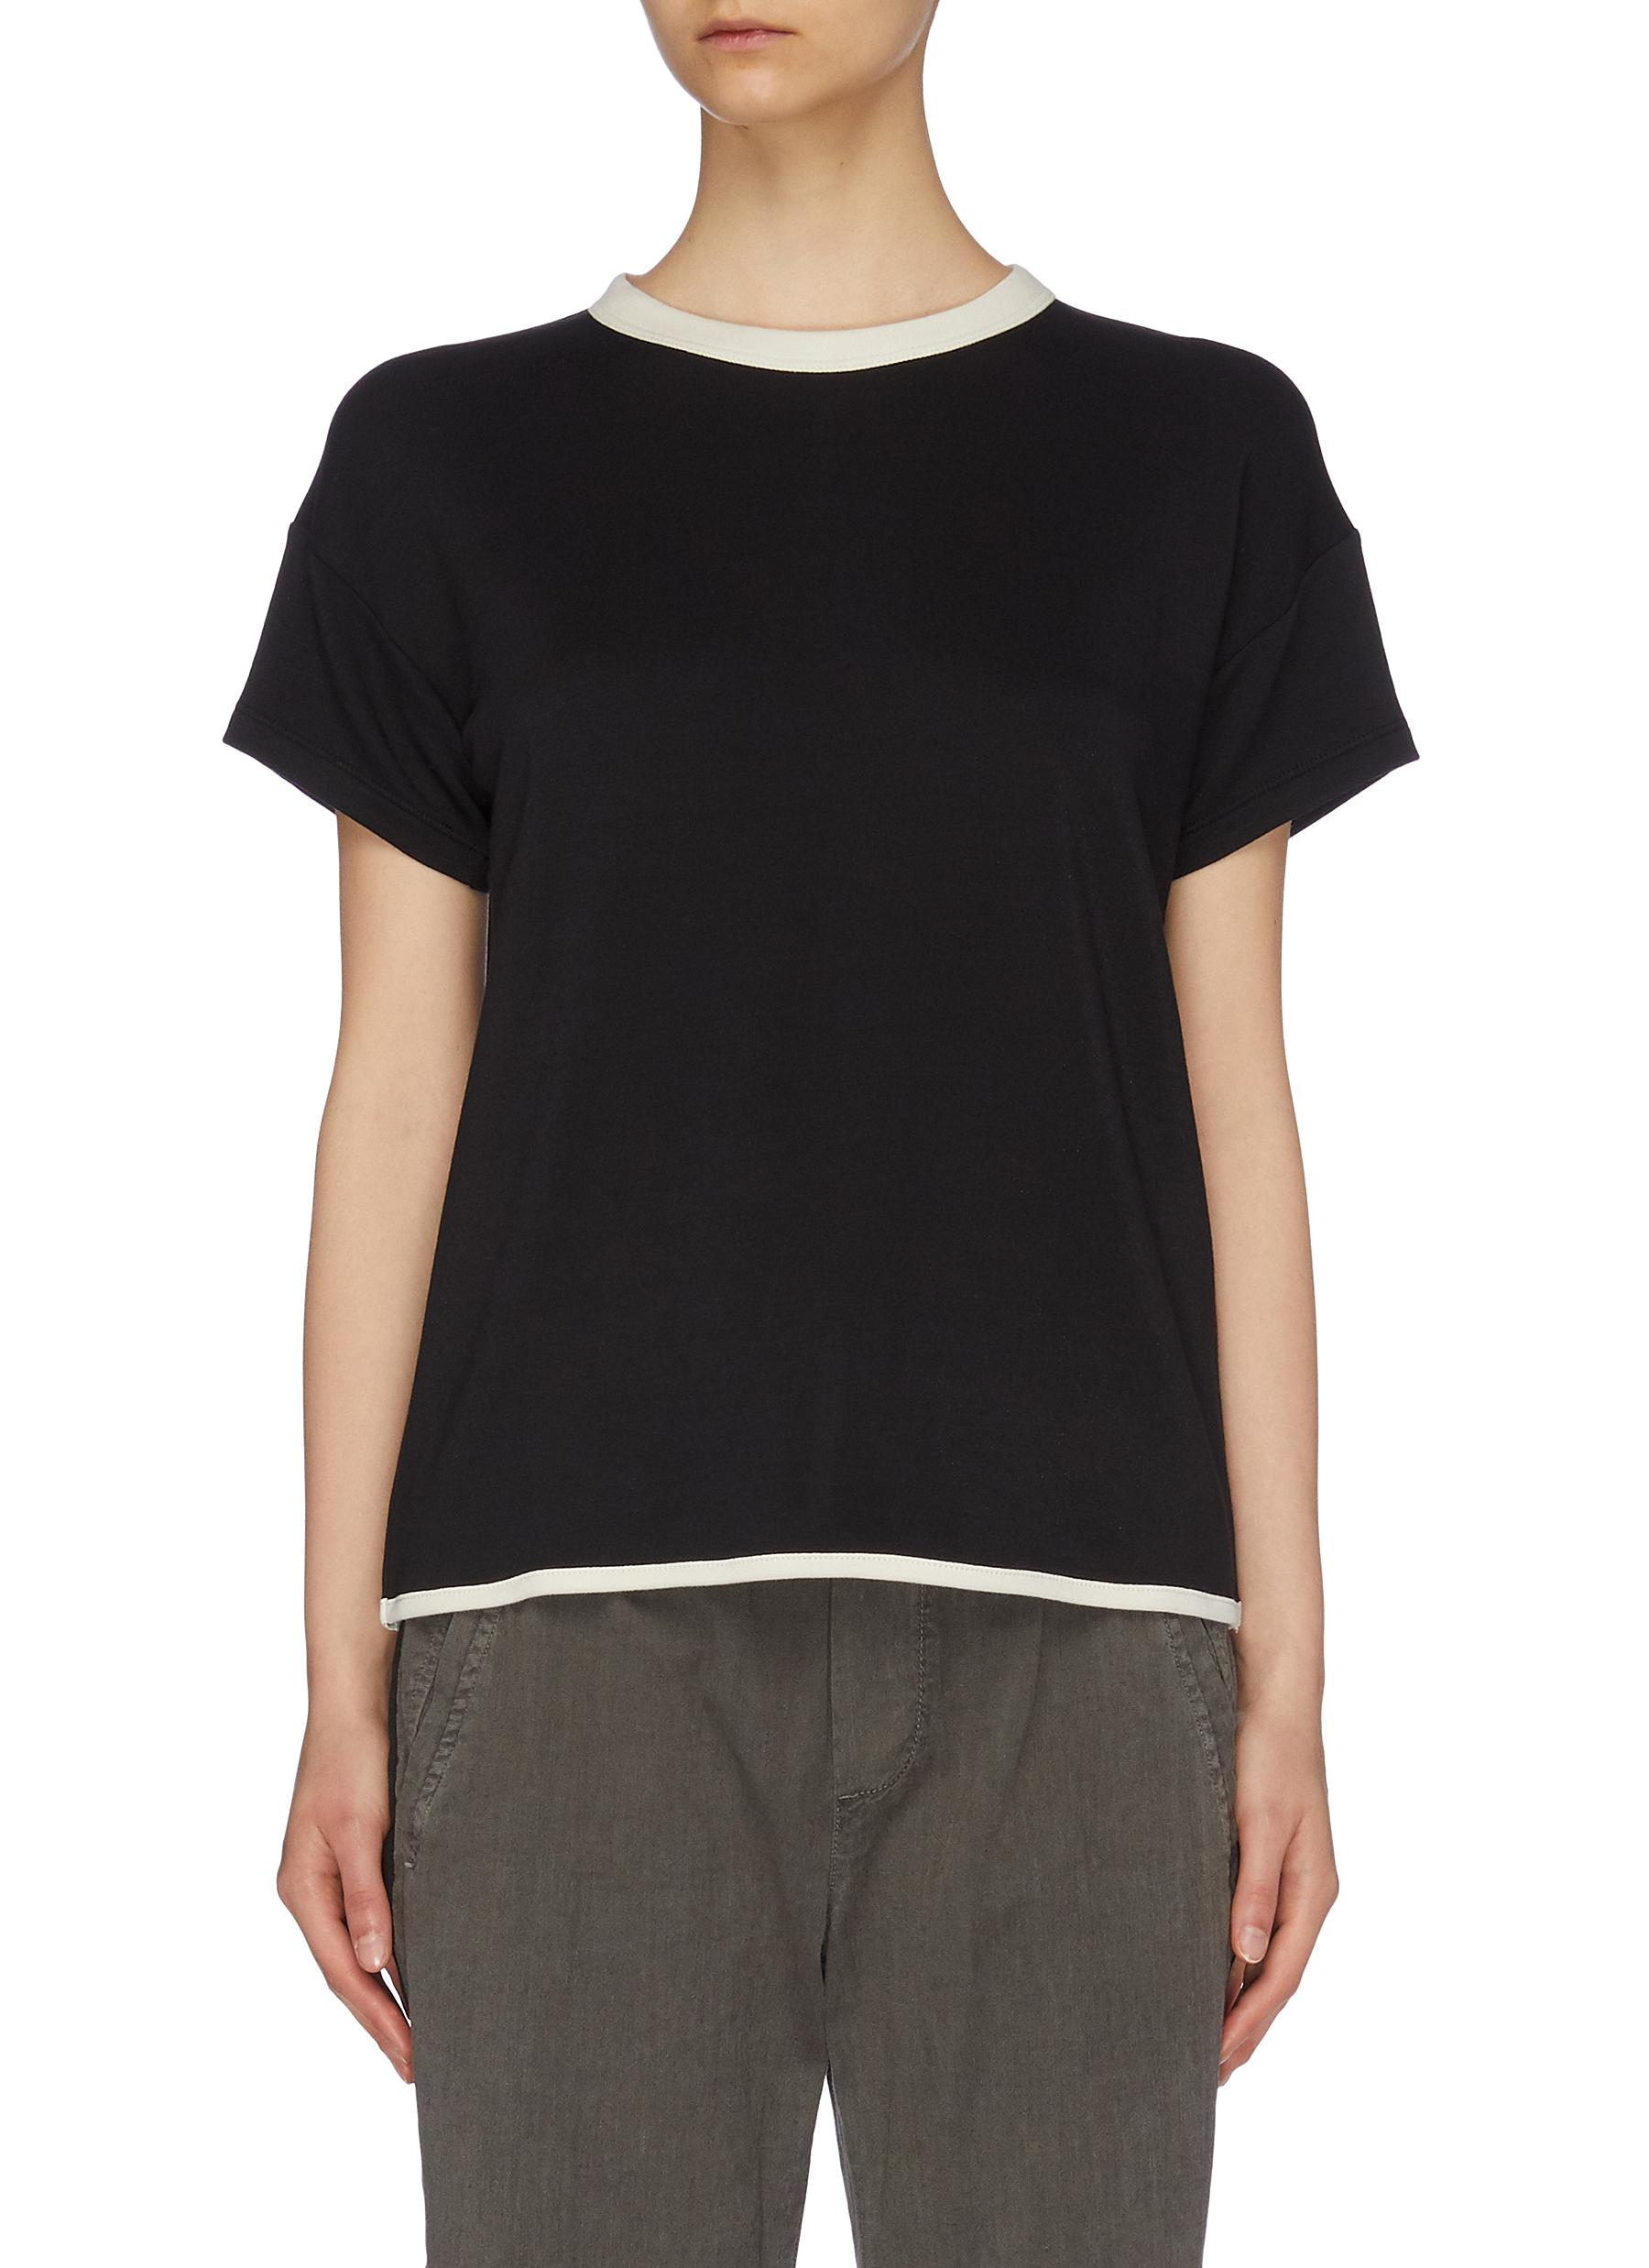 Coast contrast border T-shirt by Rag & Bone/Jean